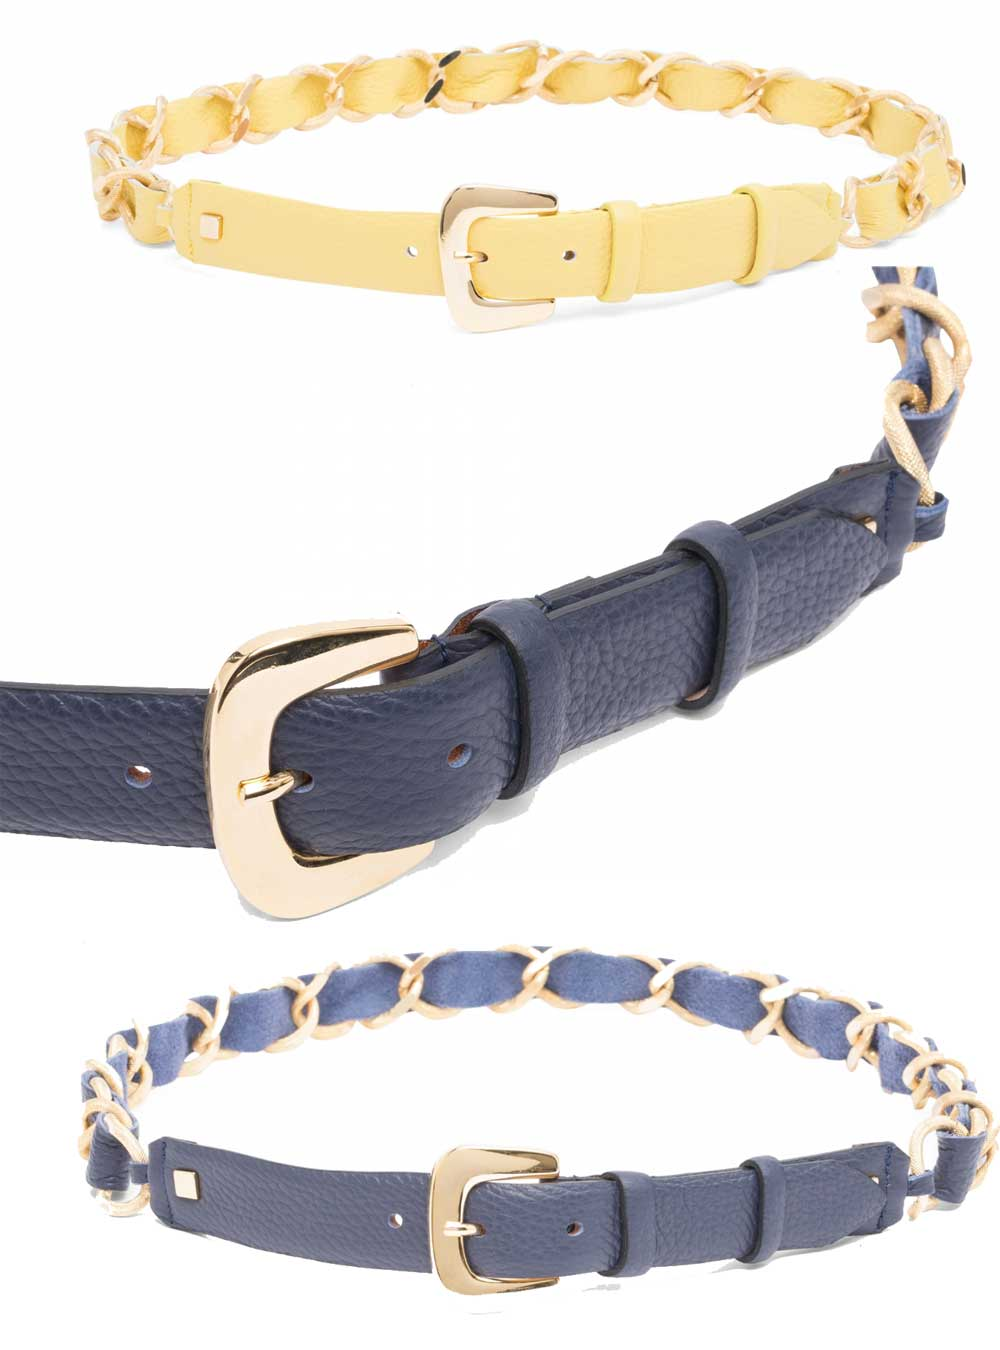 Luisa Spagnoli belts with chain